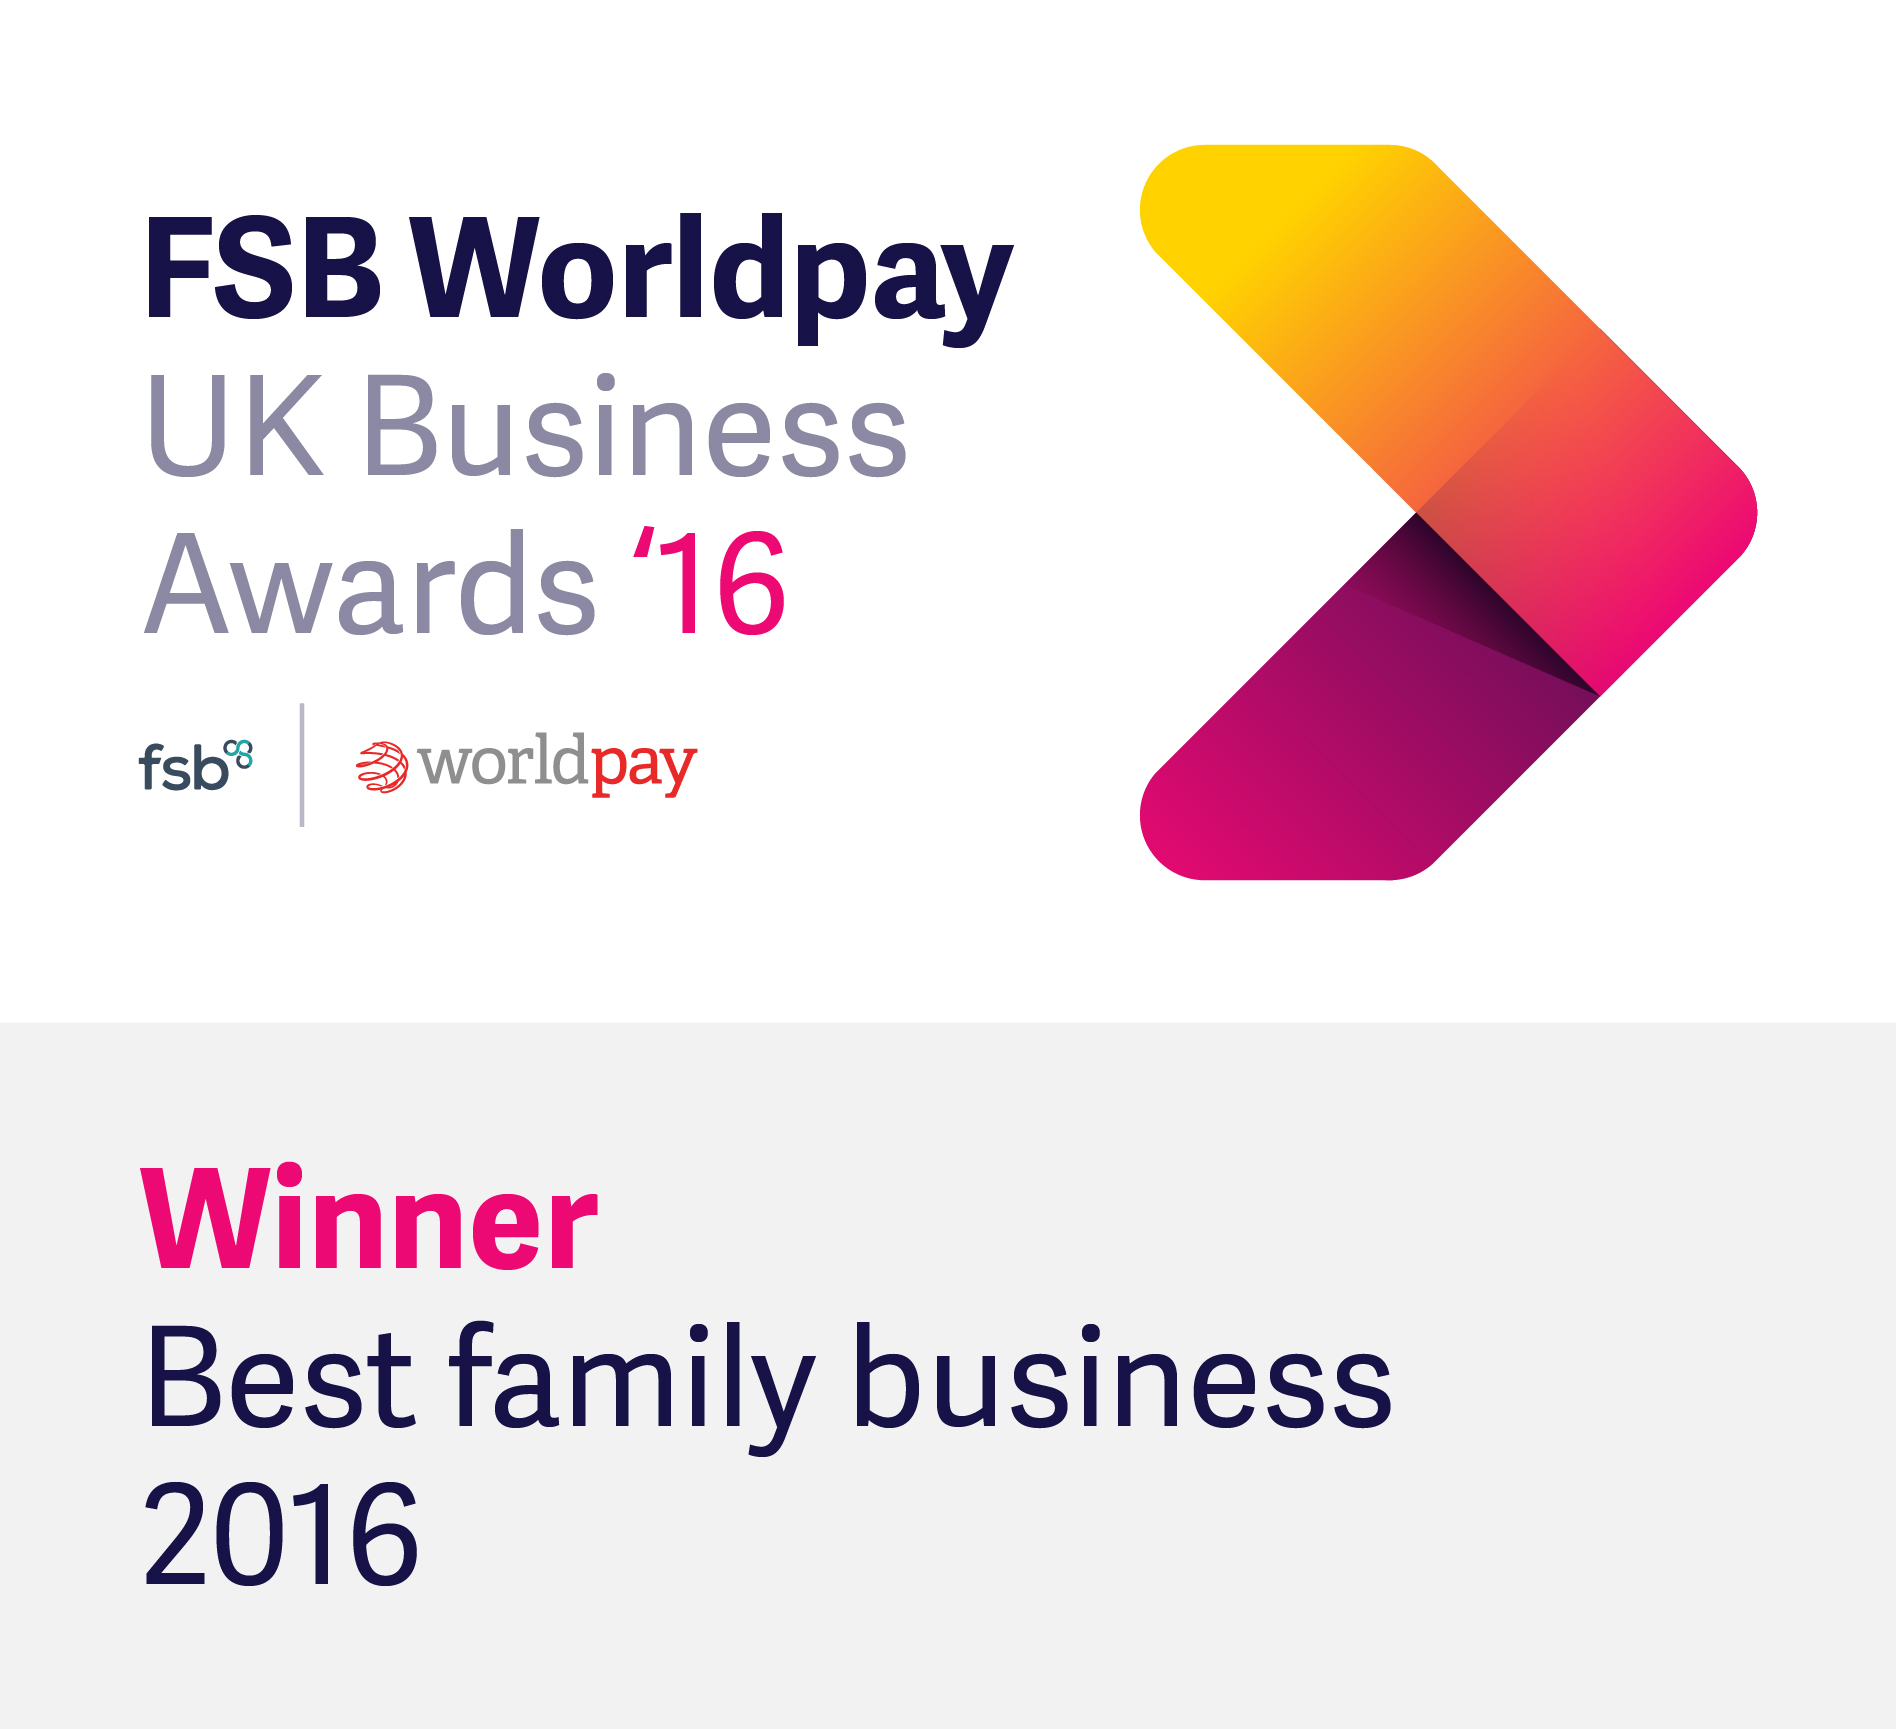 FSB/Worldpay Winners of the Family Business of the Year Award 2016